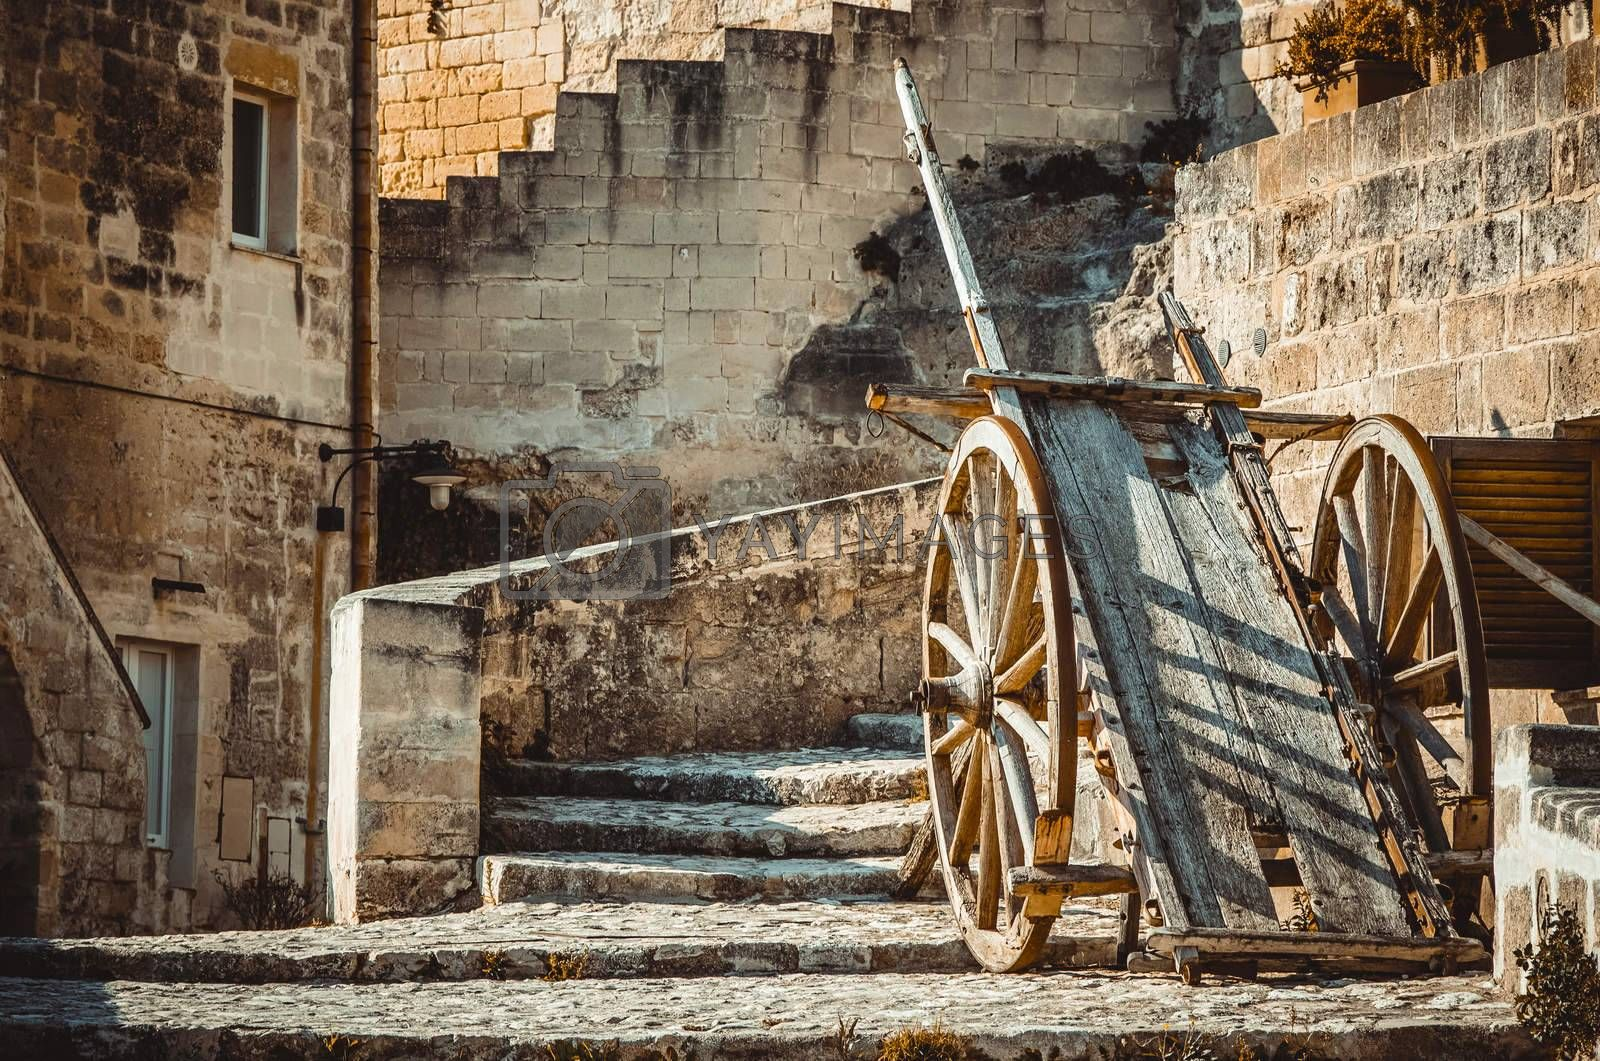 old historical wood wagon typical tool used in the past, in Matera, Italy UNESCO European Capital of Culture 2019